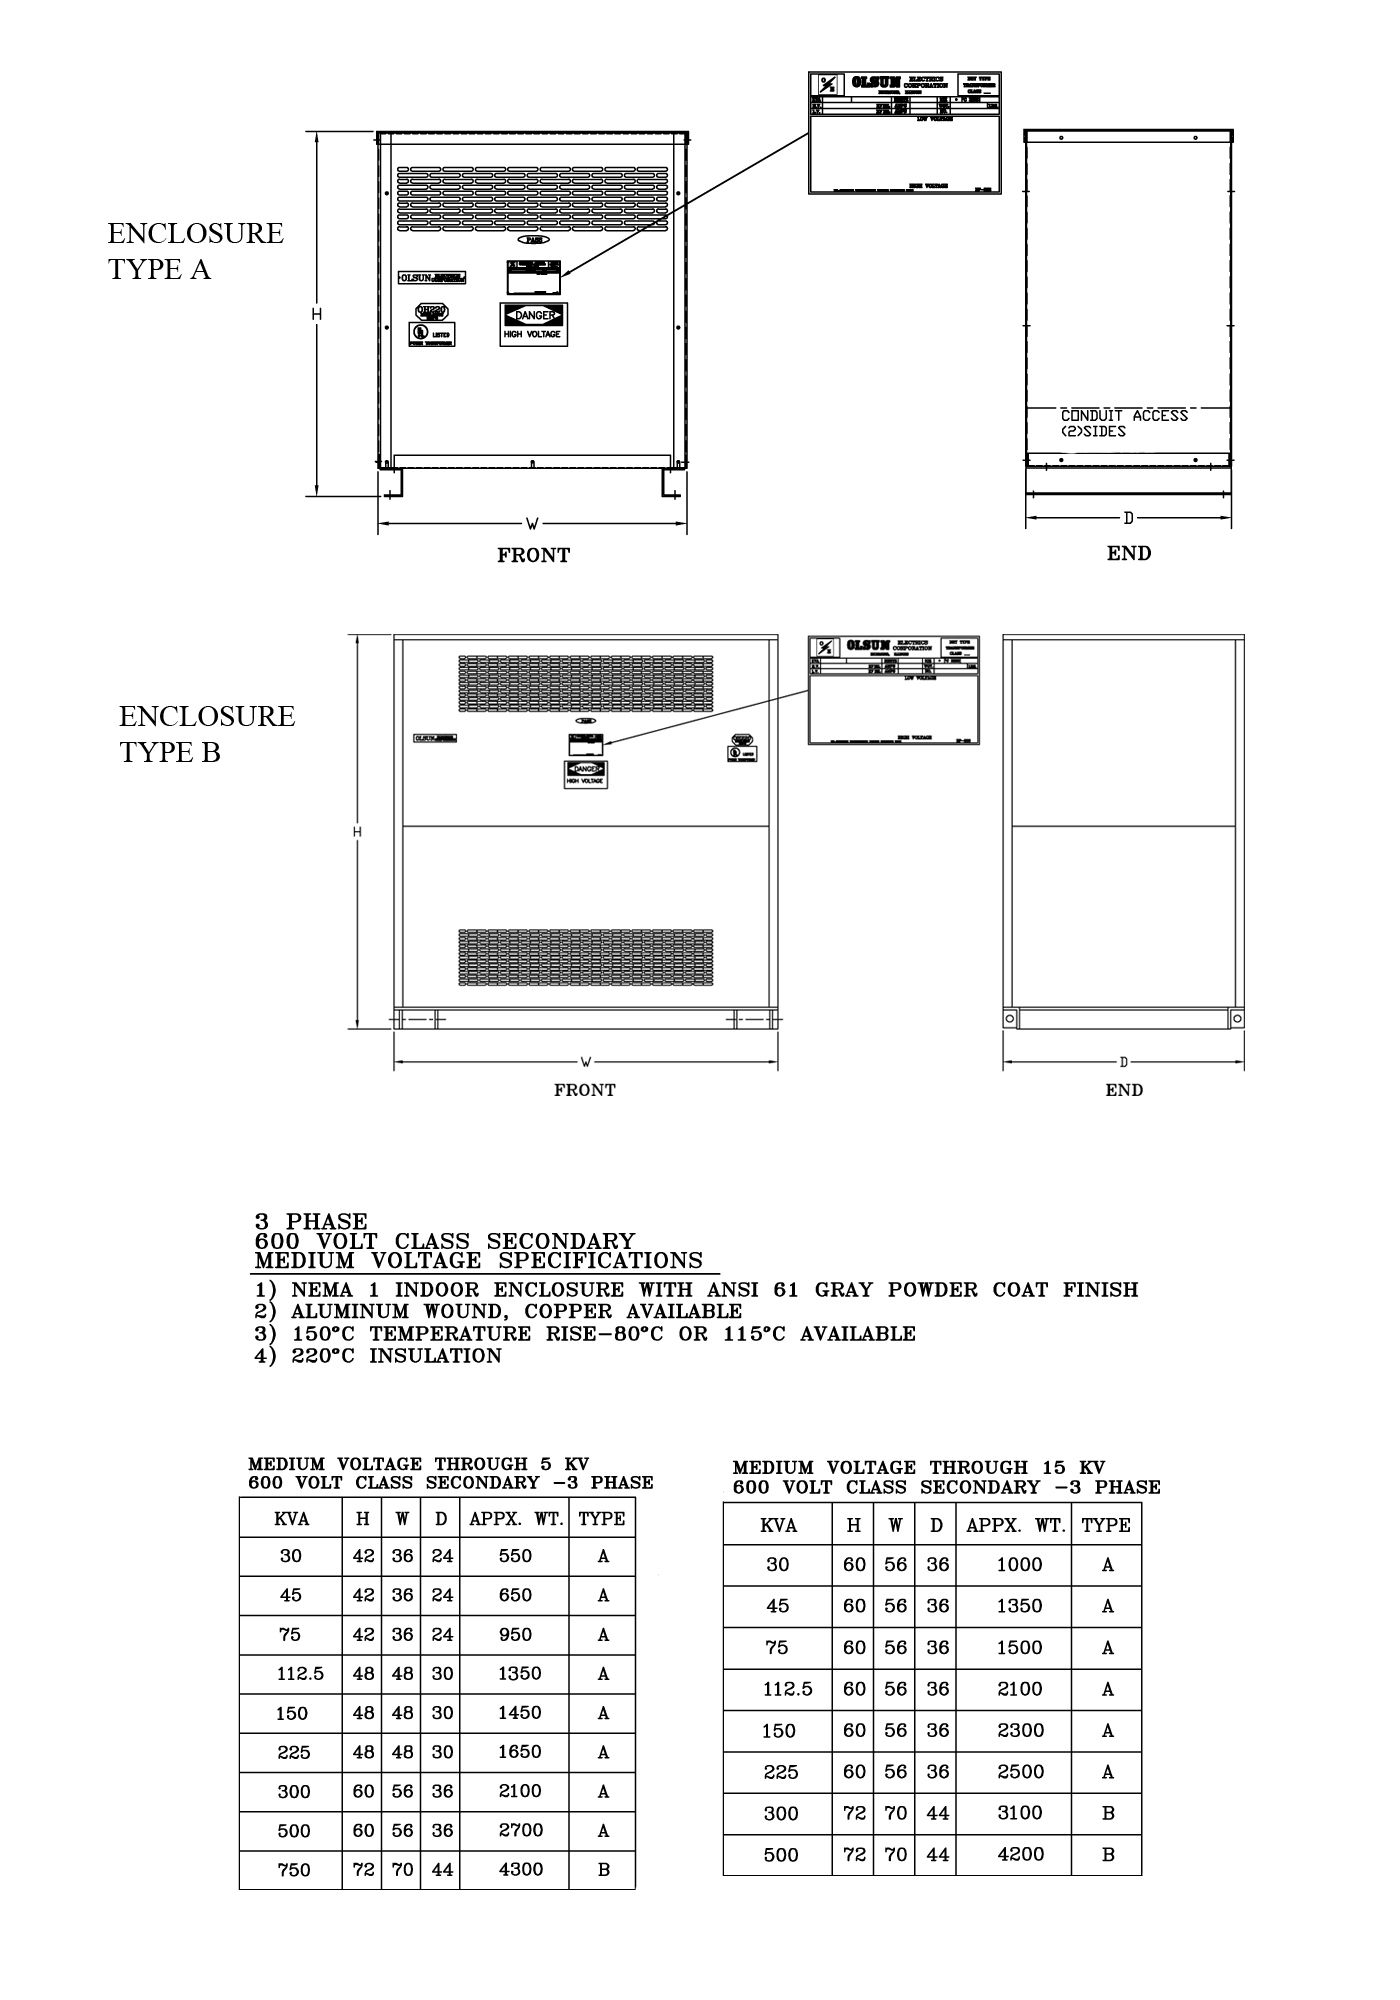 Three Phase 600 Volt Class Secondary Secondary Insulation Floor Plans